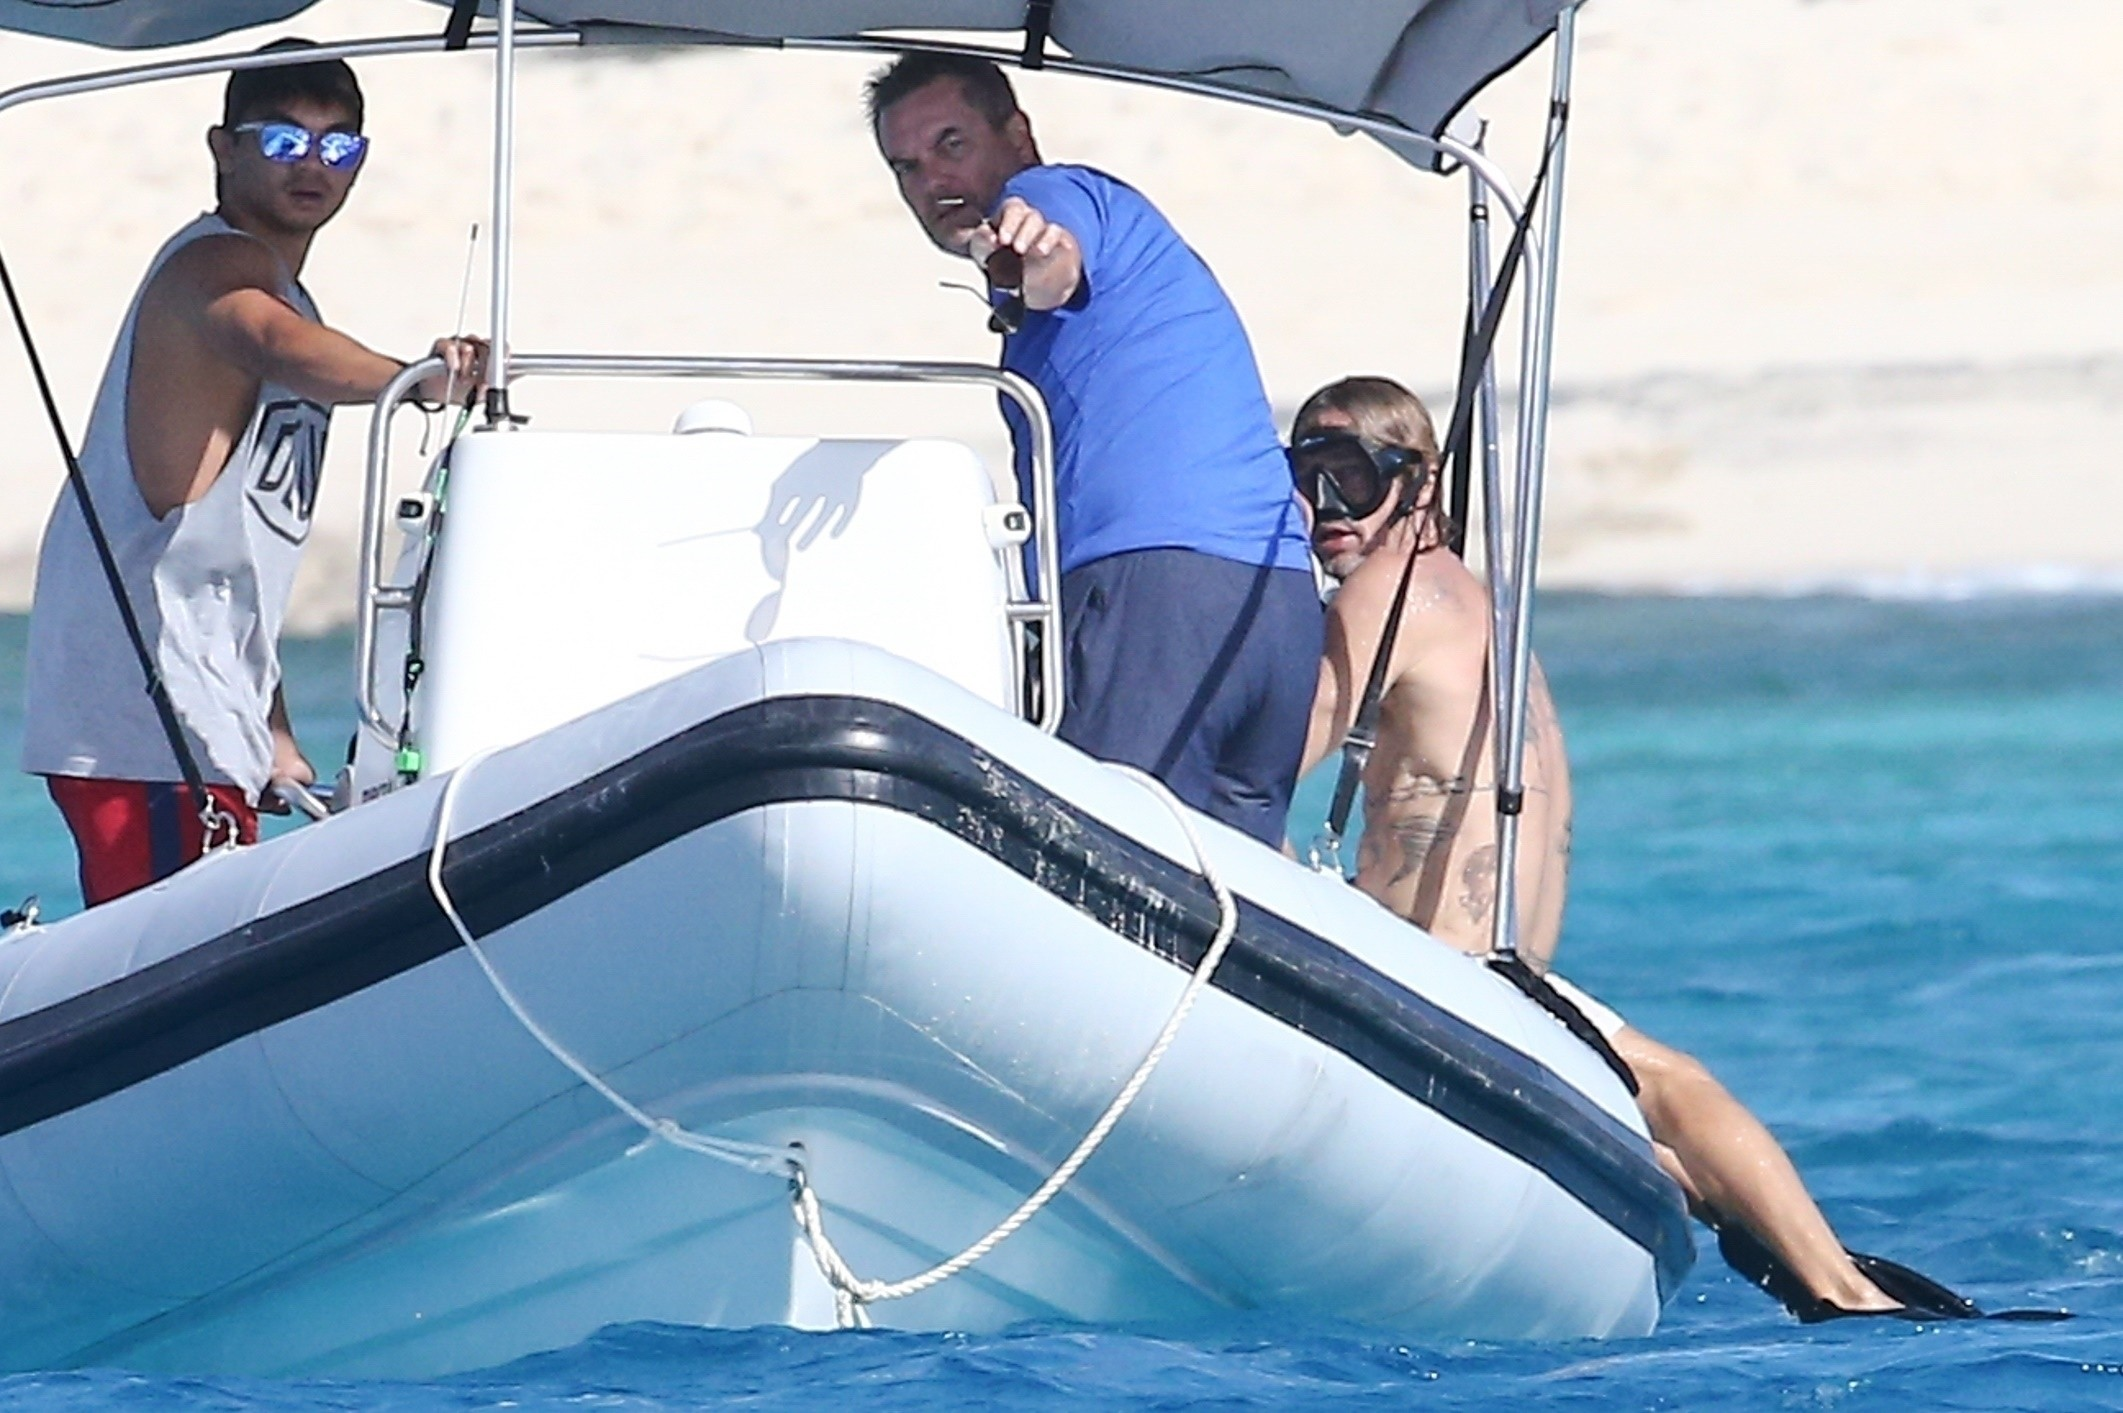 Photo © 2021 Backgrid/The Grosby GroupProvidenciales, TURKS AND CAICOS ISLANDS  - *PREMIUM-EXCLUSIVE*  - Brad Pitt and pal Flea are spotted during a getaway in Turks and Caicos. The two long time pals were spotted out on a boat ride where they headed of (Foto: Backgrid/The Grosby Group)